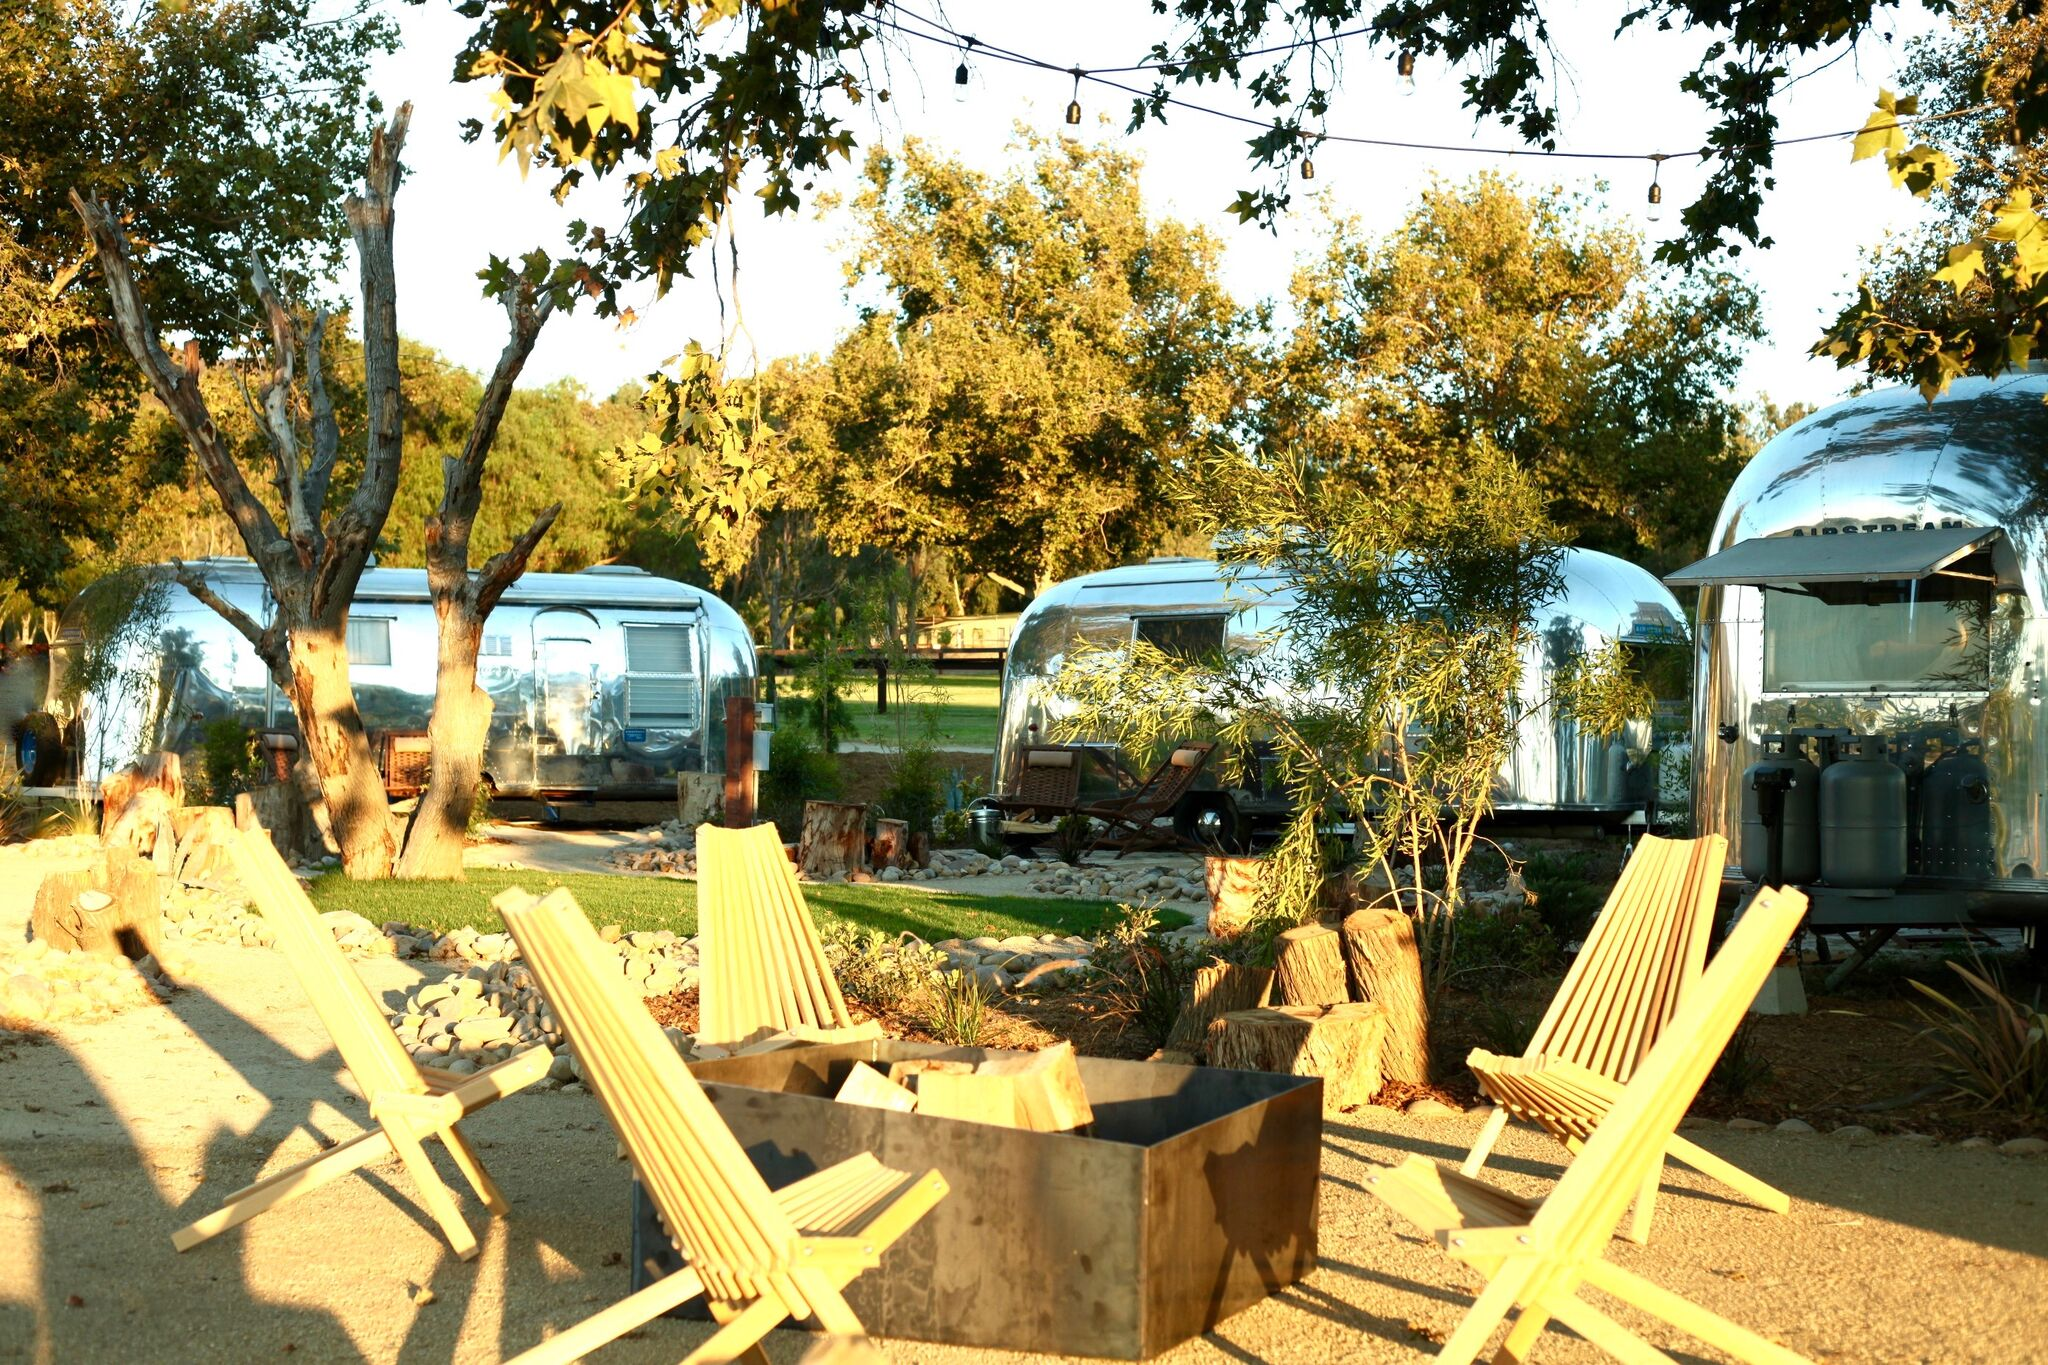 Silver Lining Trailer Camp - A New Kind Of Camping, Temecula